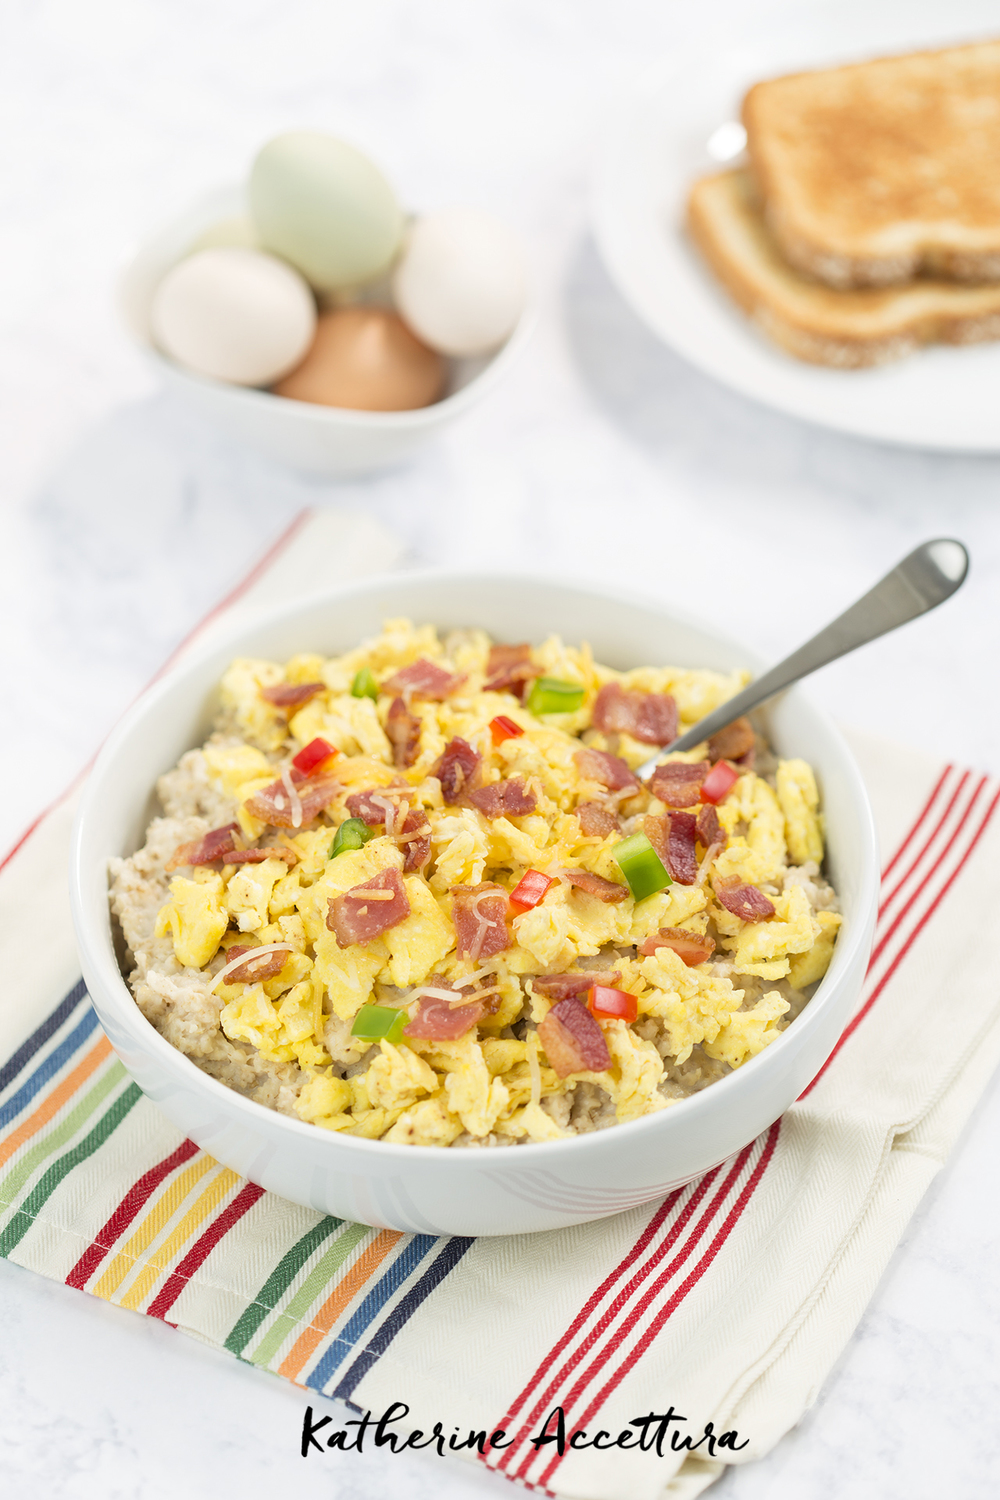 Bacon, Egg, and Cheese Oatmeal